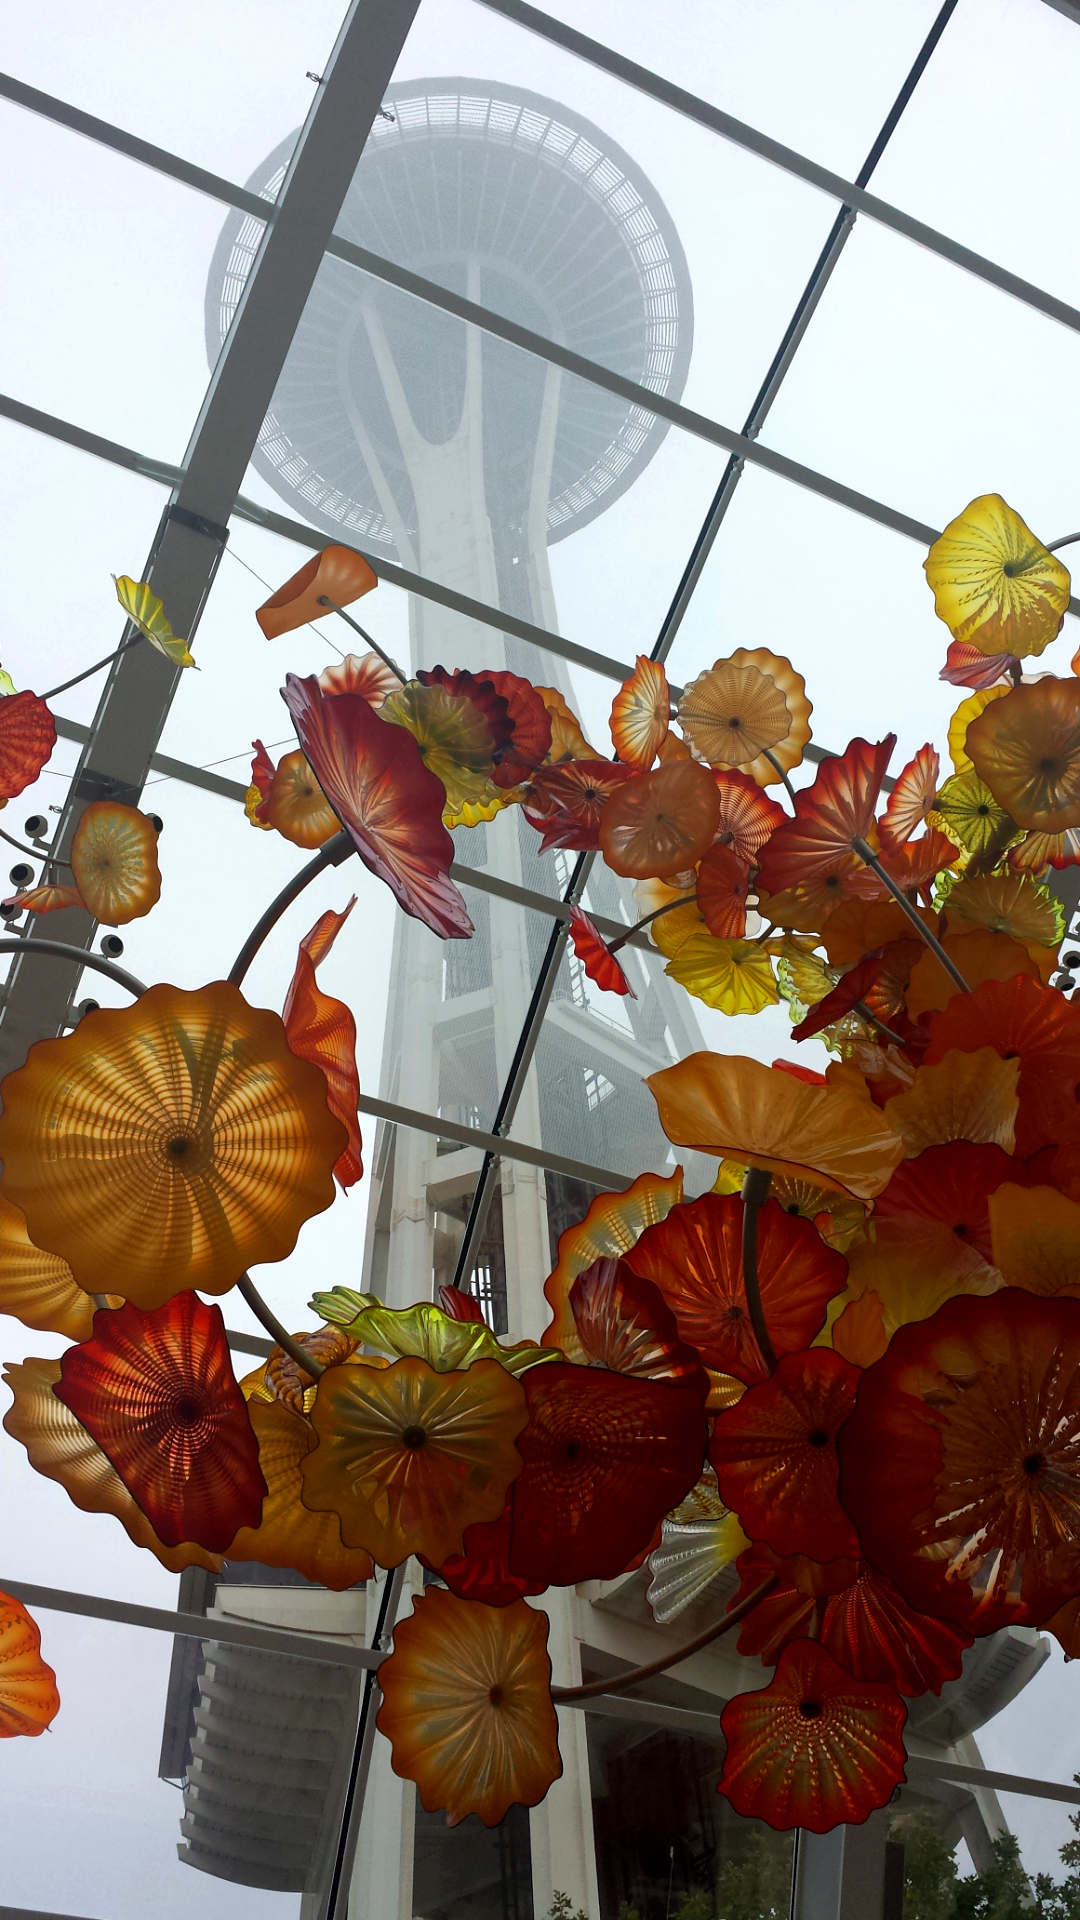 play tourist] chihuly garden & glass – Seattle by Sarah